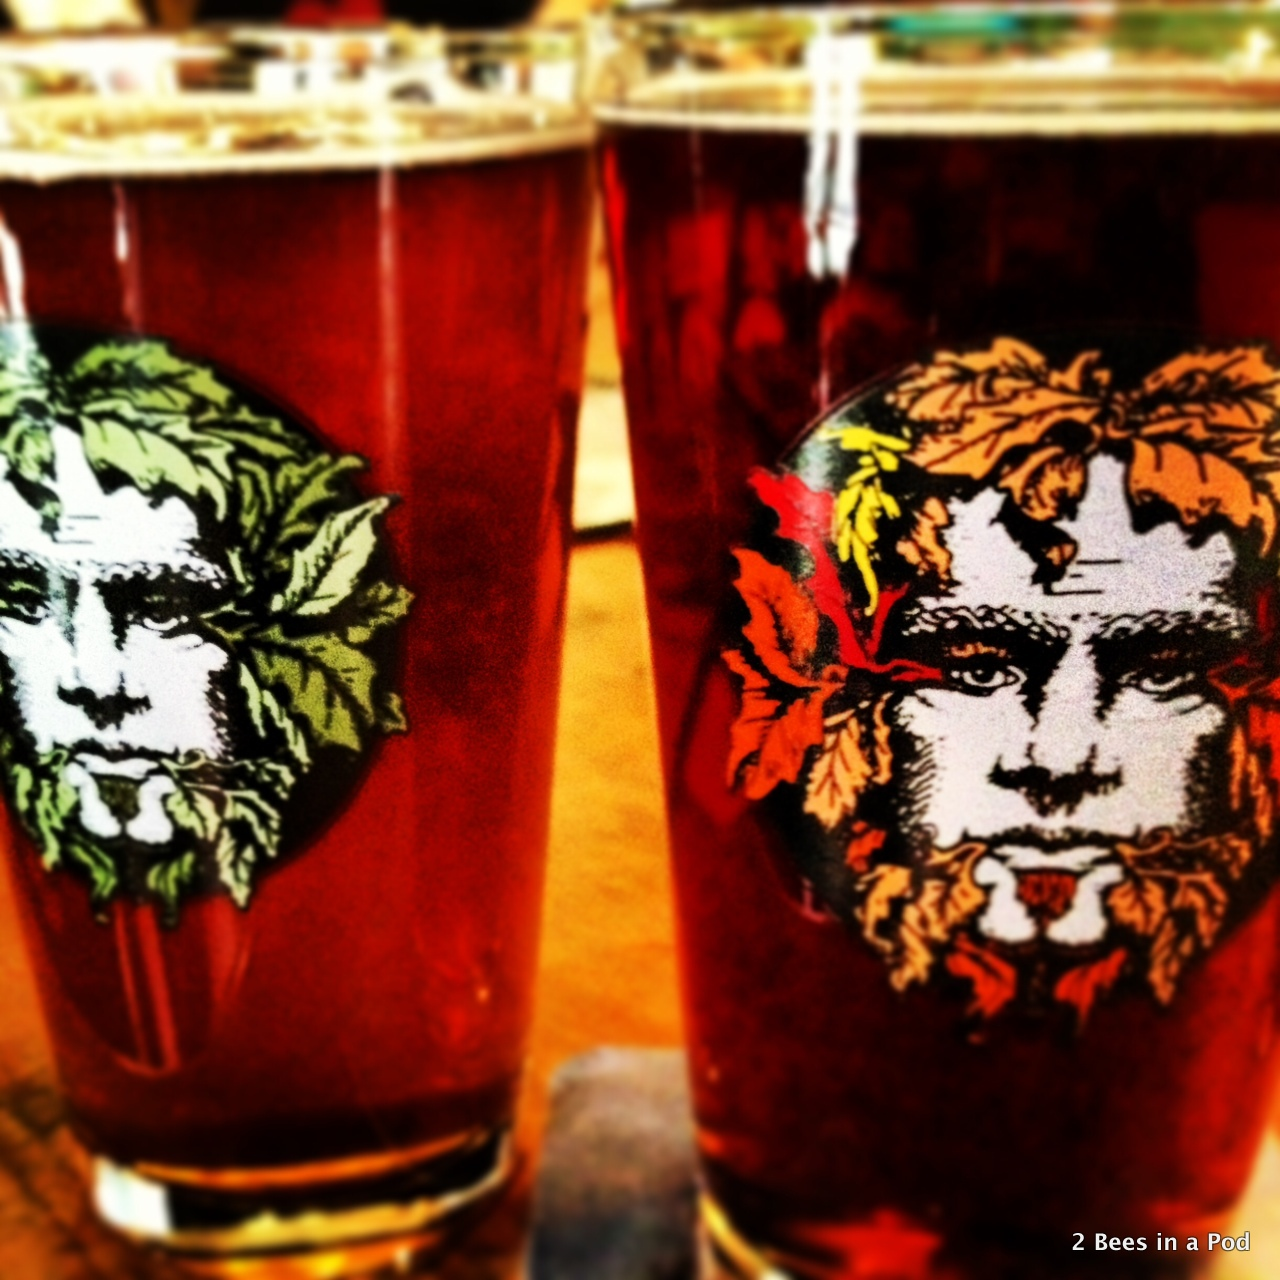 Green Man Brewing in Asheville